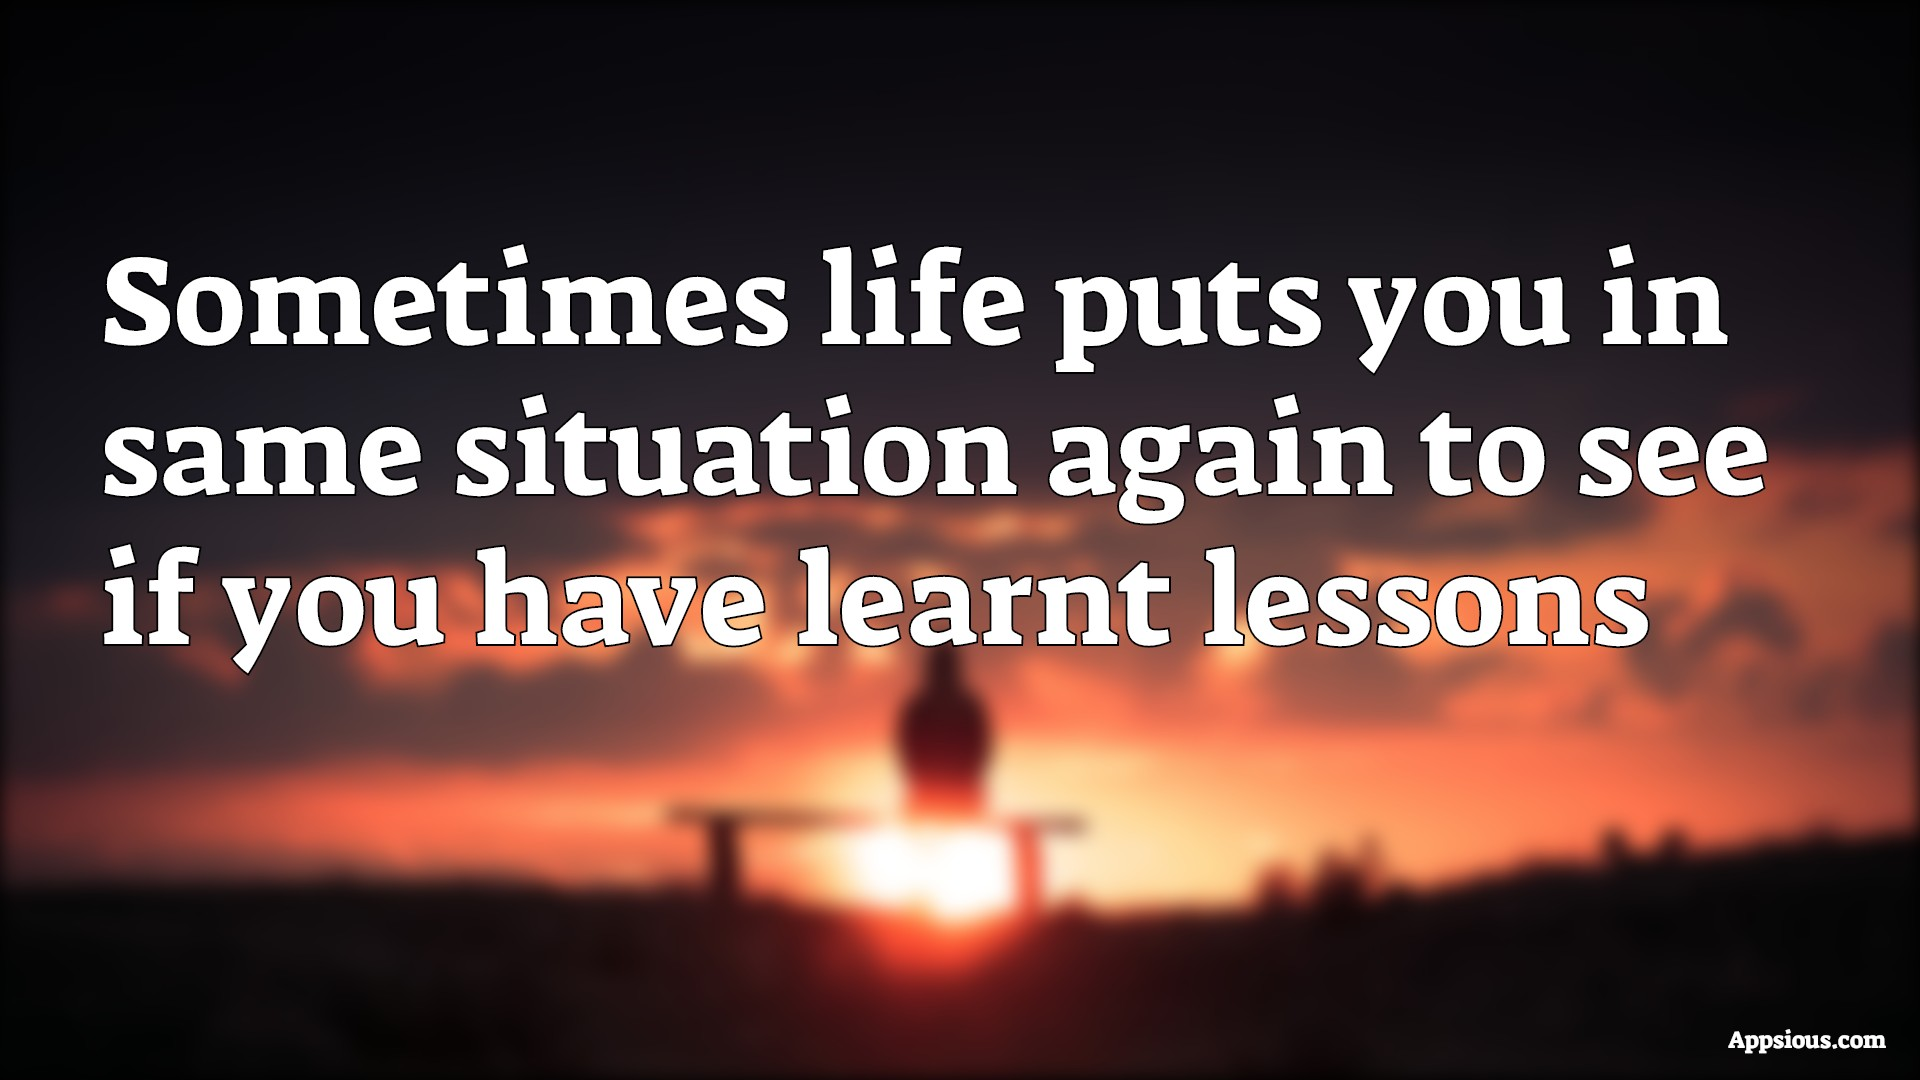 Sometimes life puts you in same situation again to see if you have learnt lessons